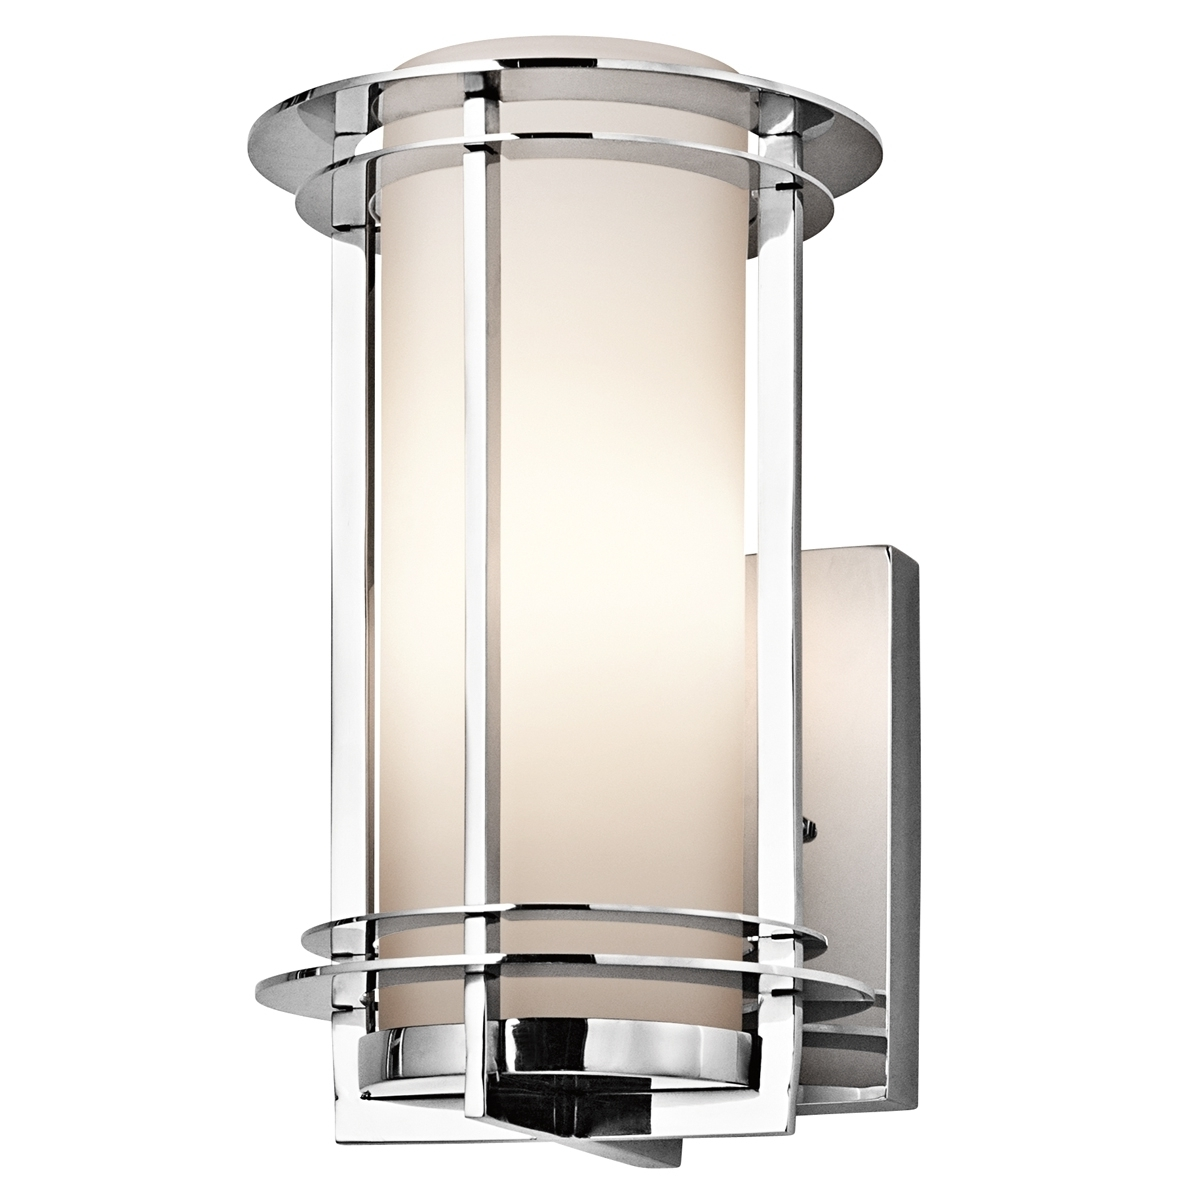 Kichler Outdoor Lighting Wall Sconce • Wall Sconces Inside Most Recently Released Chrome Outdoor Wall Lighting (View 13 of 20)